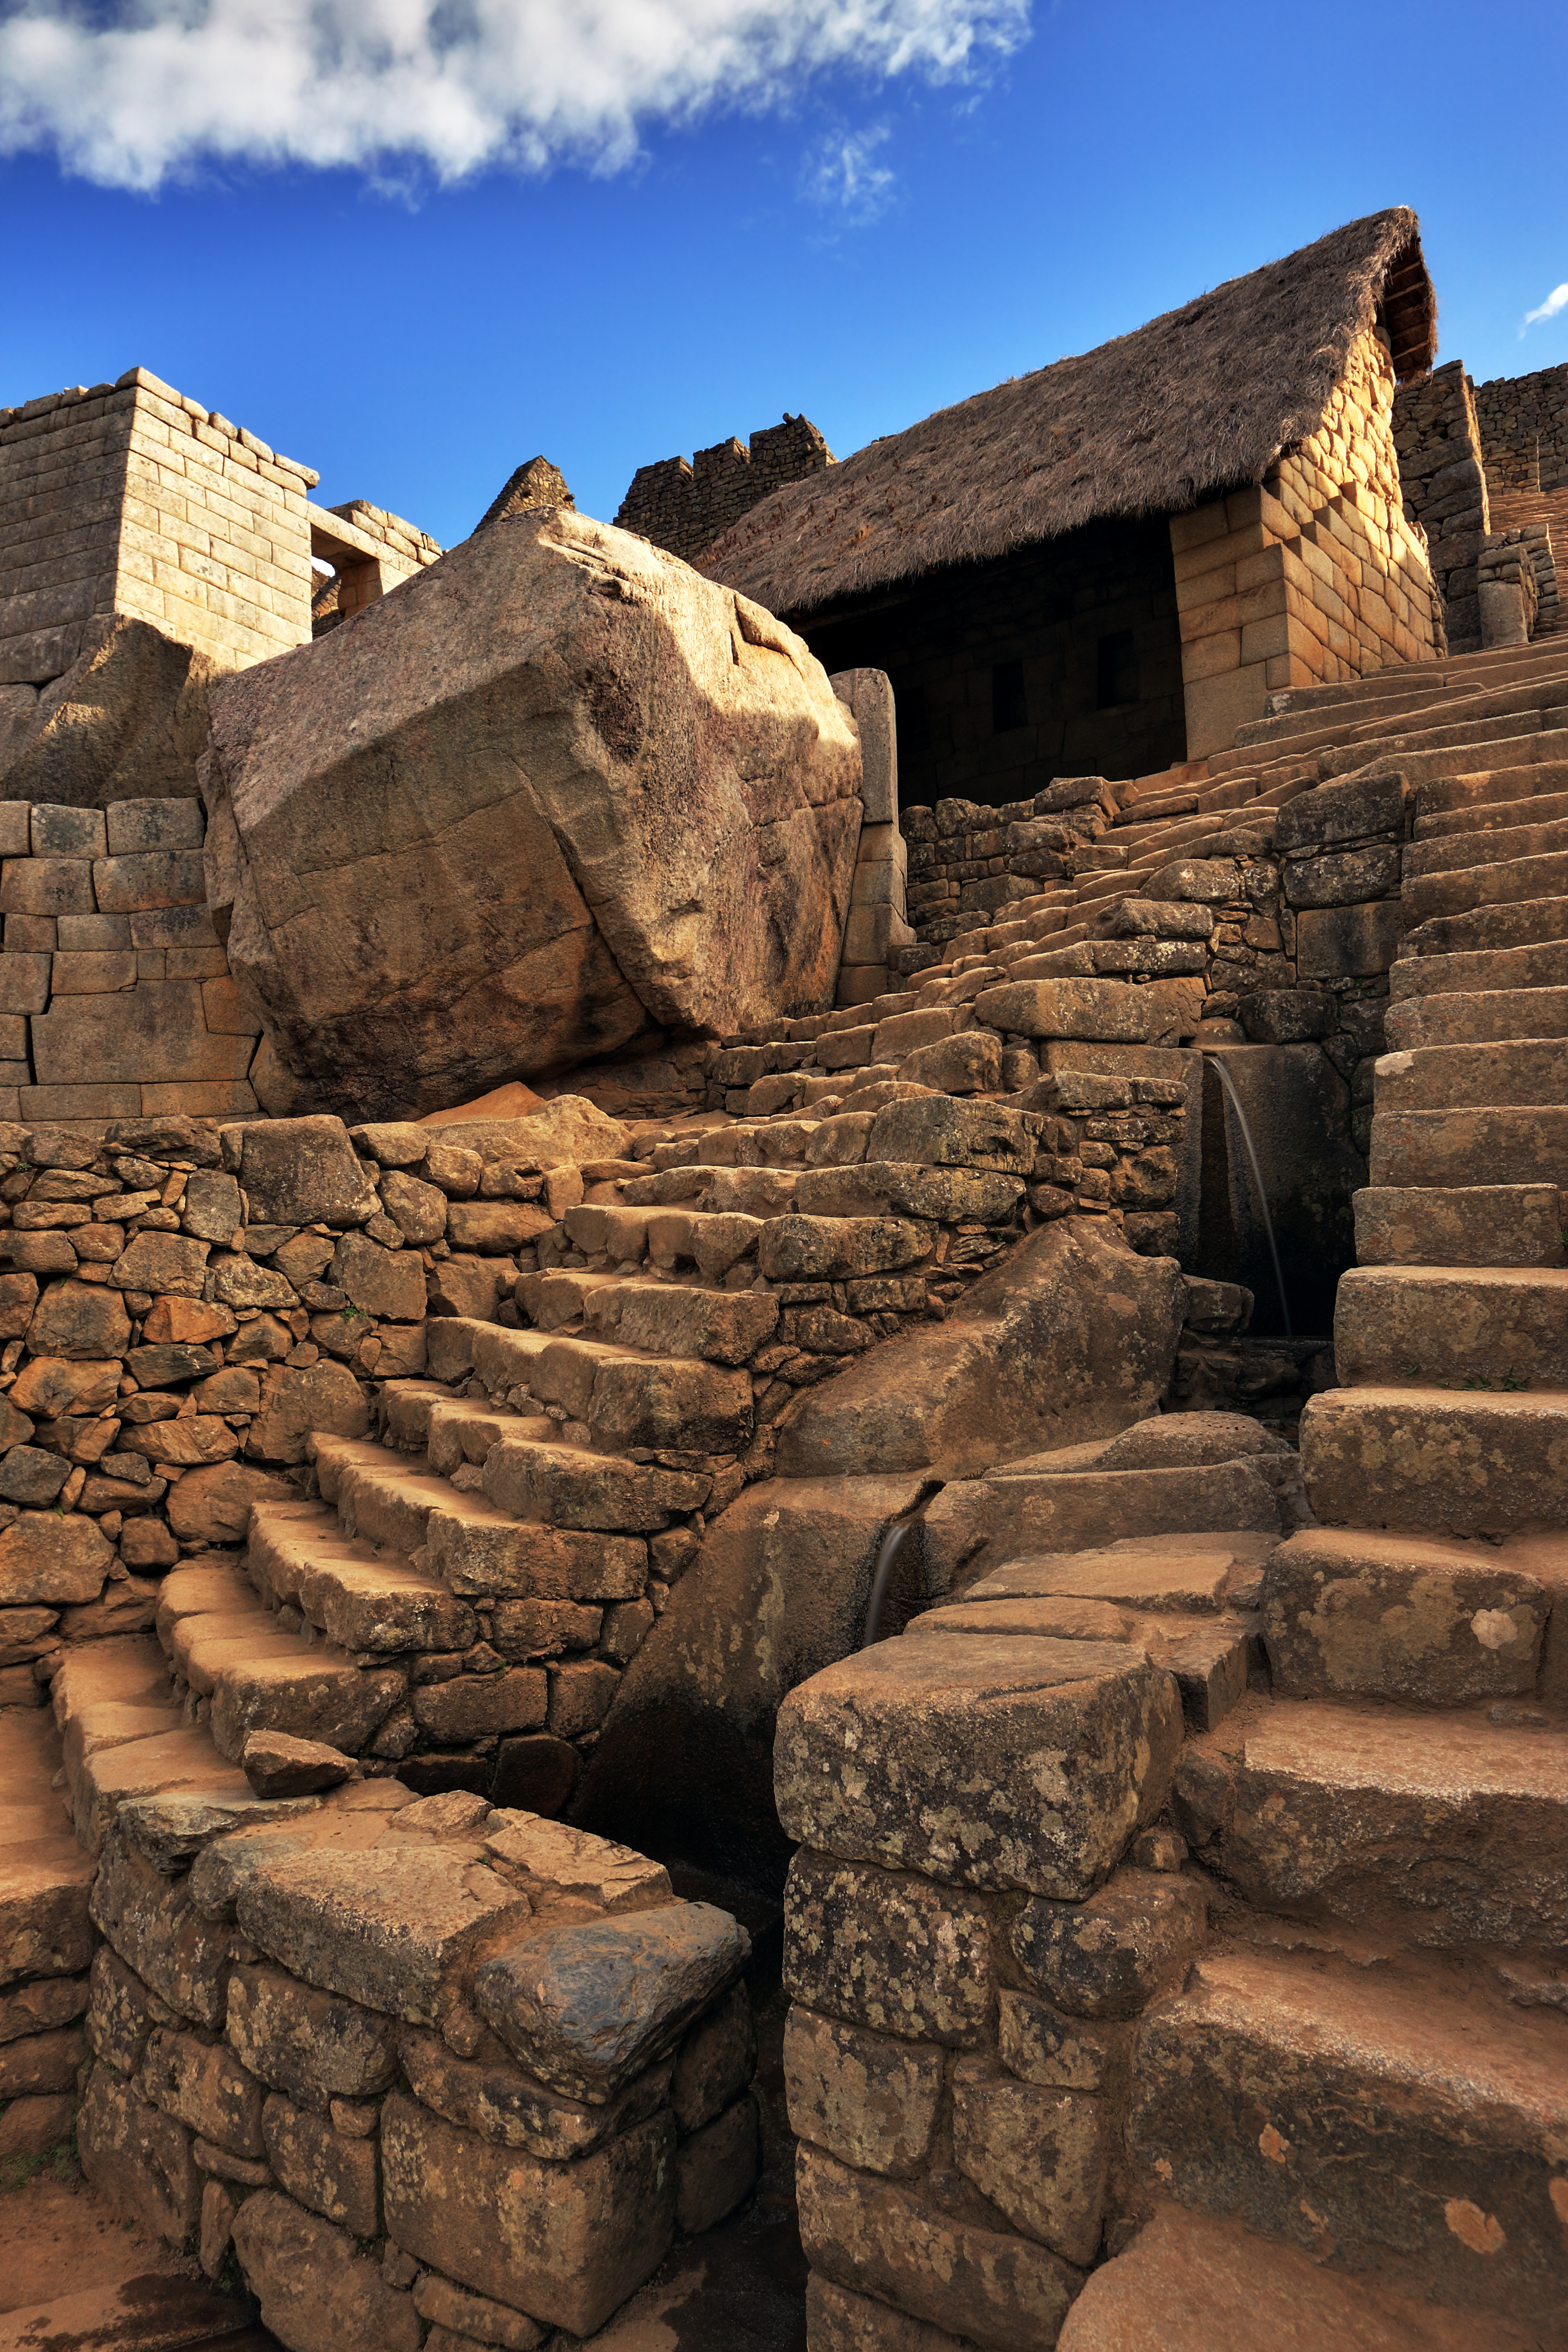 Lost Incan City of Machu Picchu: 100 Years after Discovery by ...